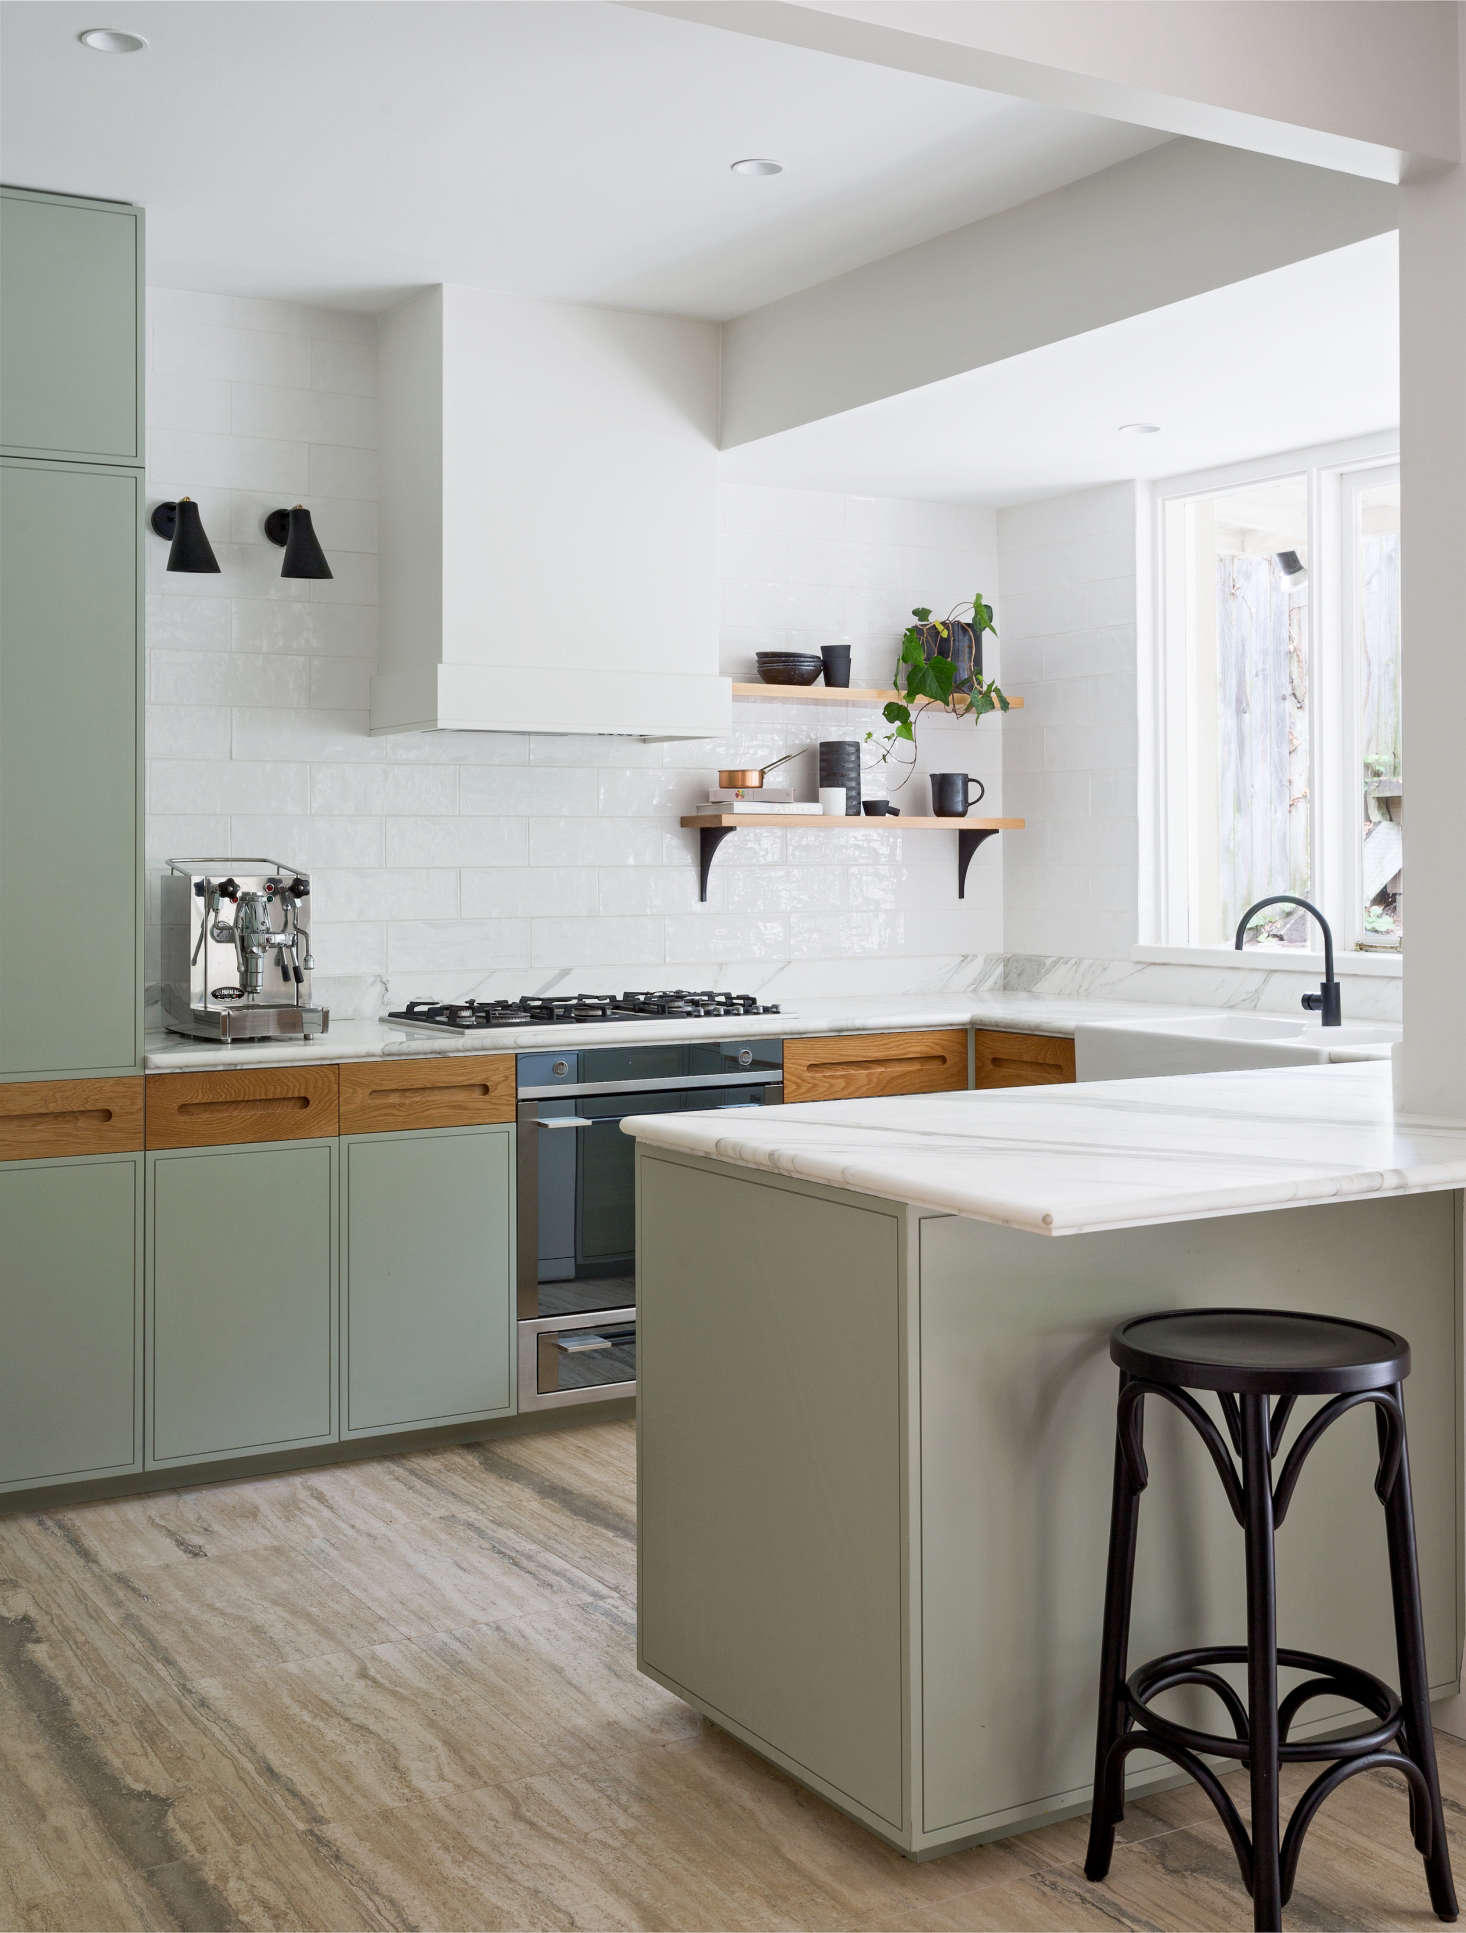 A clean and fresh-looking kitchen remodel with sage kitchen cabinets, Calacatta marble counters, and handmade subway tiles by interior designers Arent & Pyke of Sydney | Remodelista